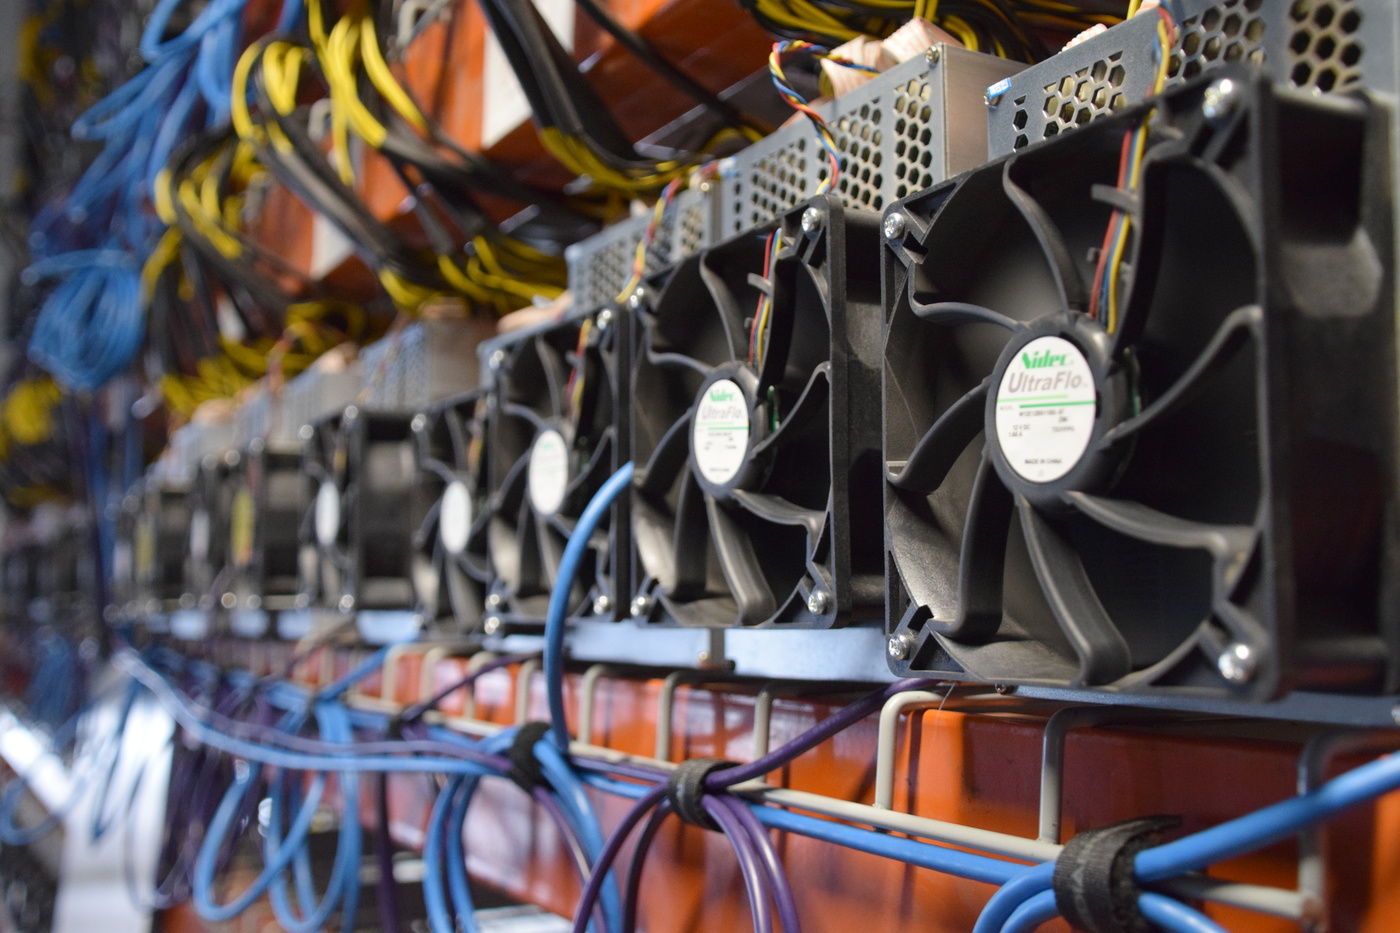 Plattsburgh, NY bans cryptocurrency mining, first USA city to block practice